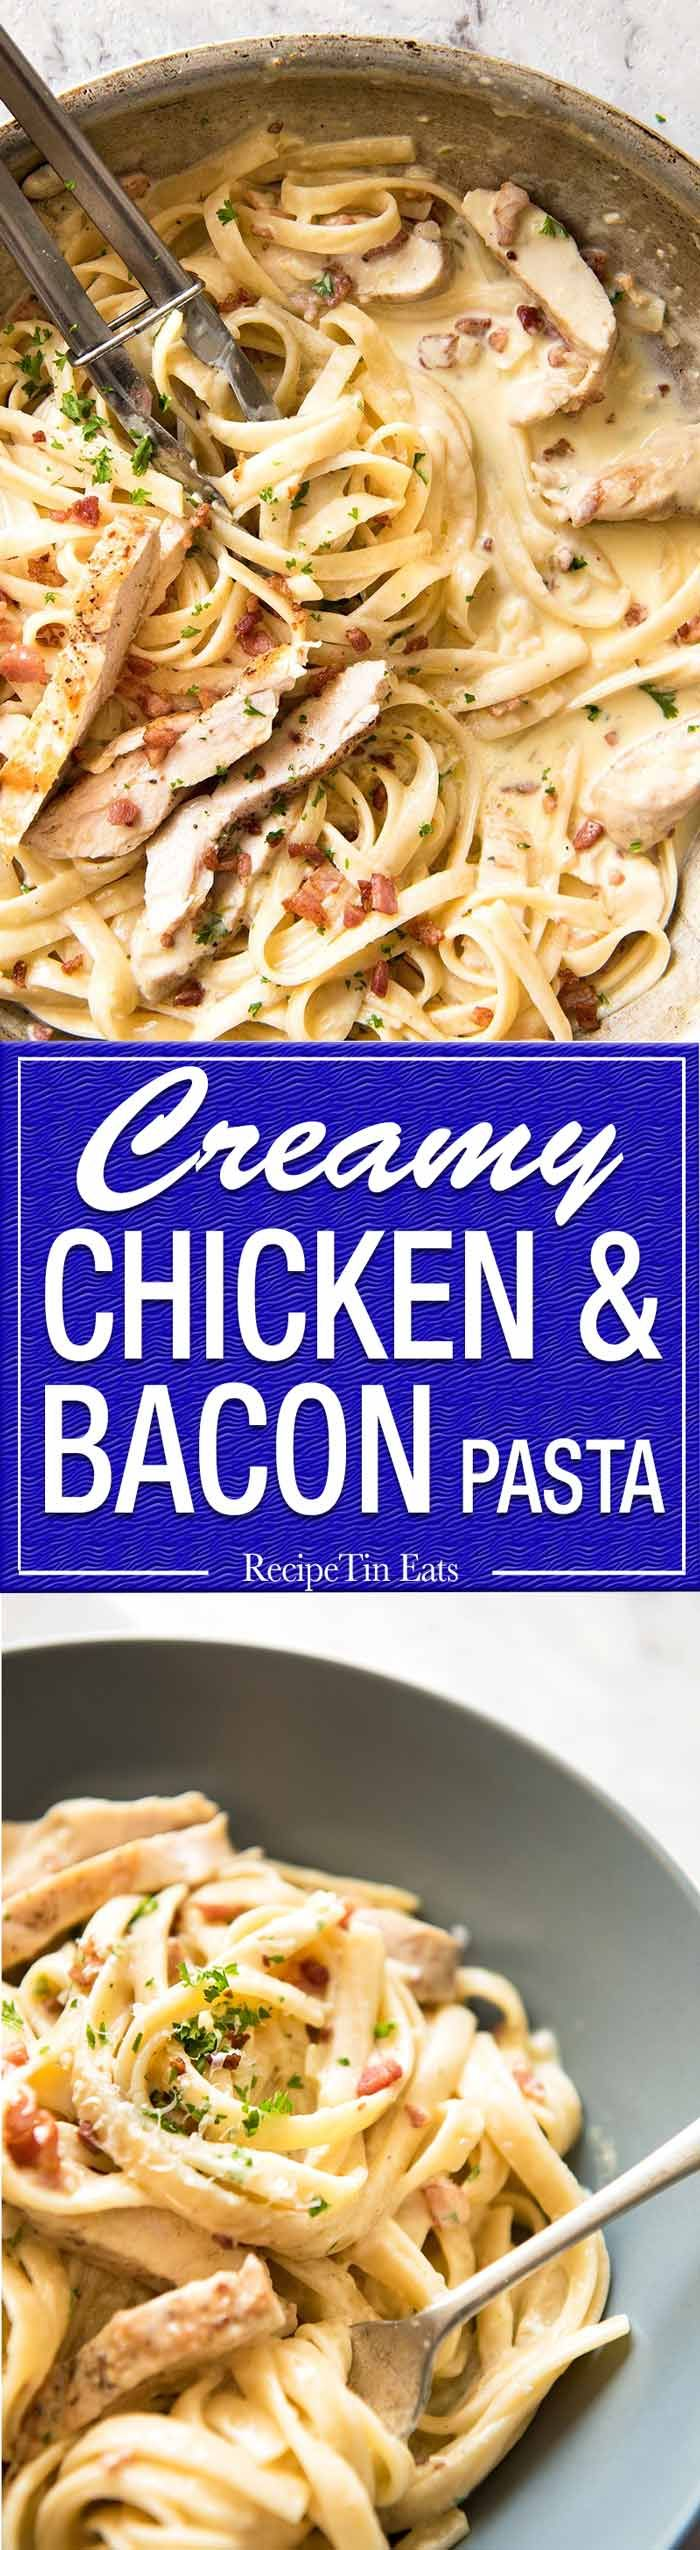 Creamy Chicken and Bacon Pasta - for all those days when nothing but a creamy pasta will do. www.recipetineats.com